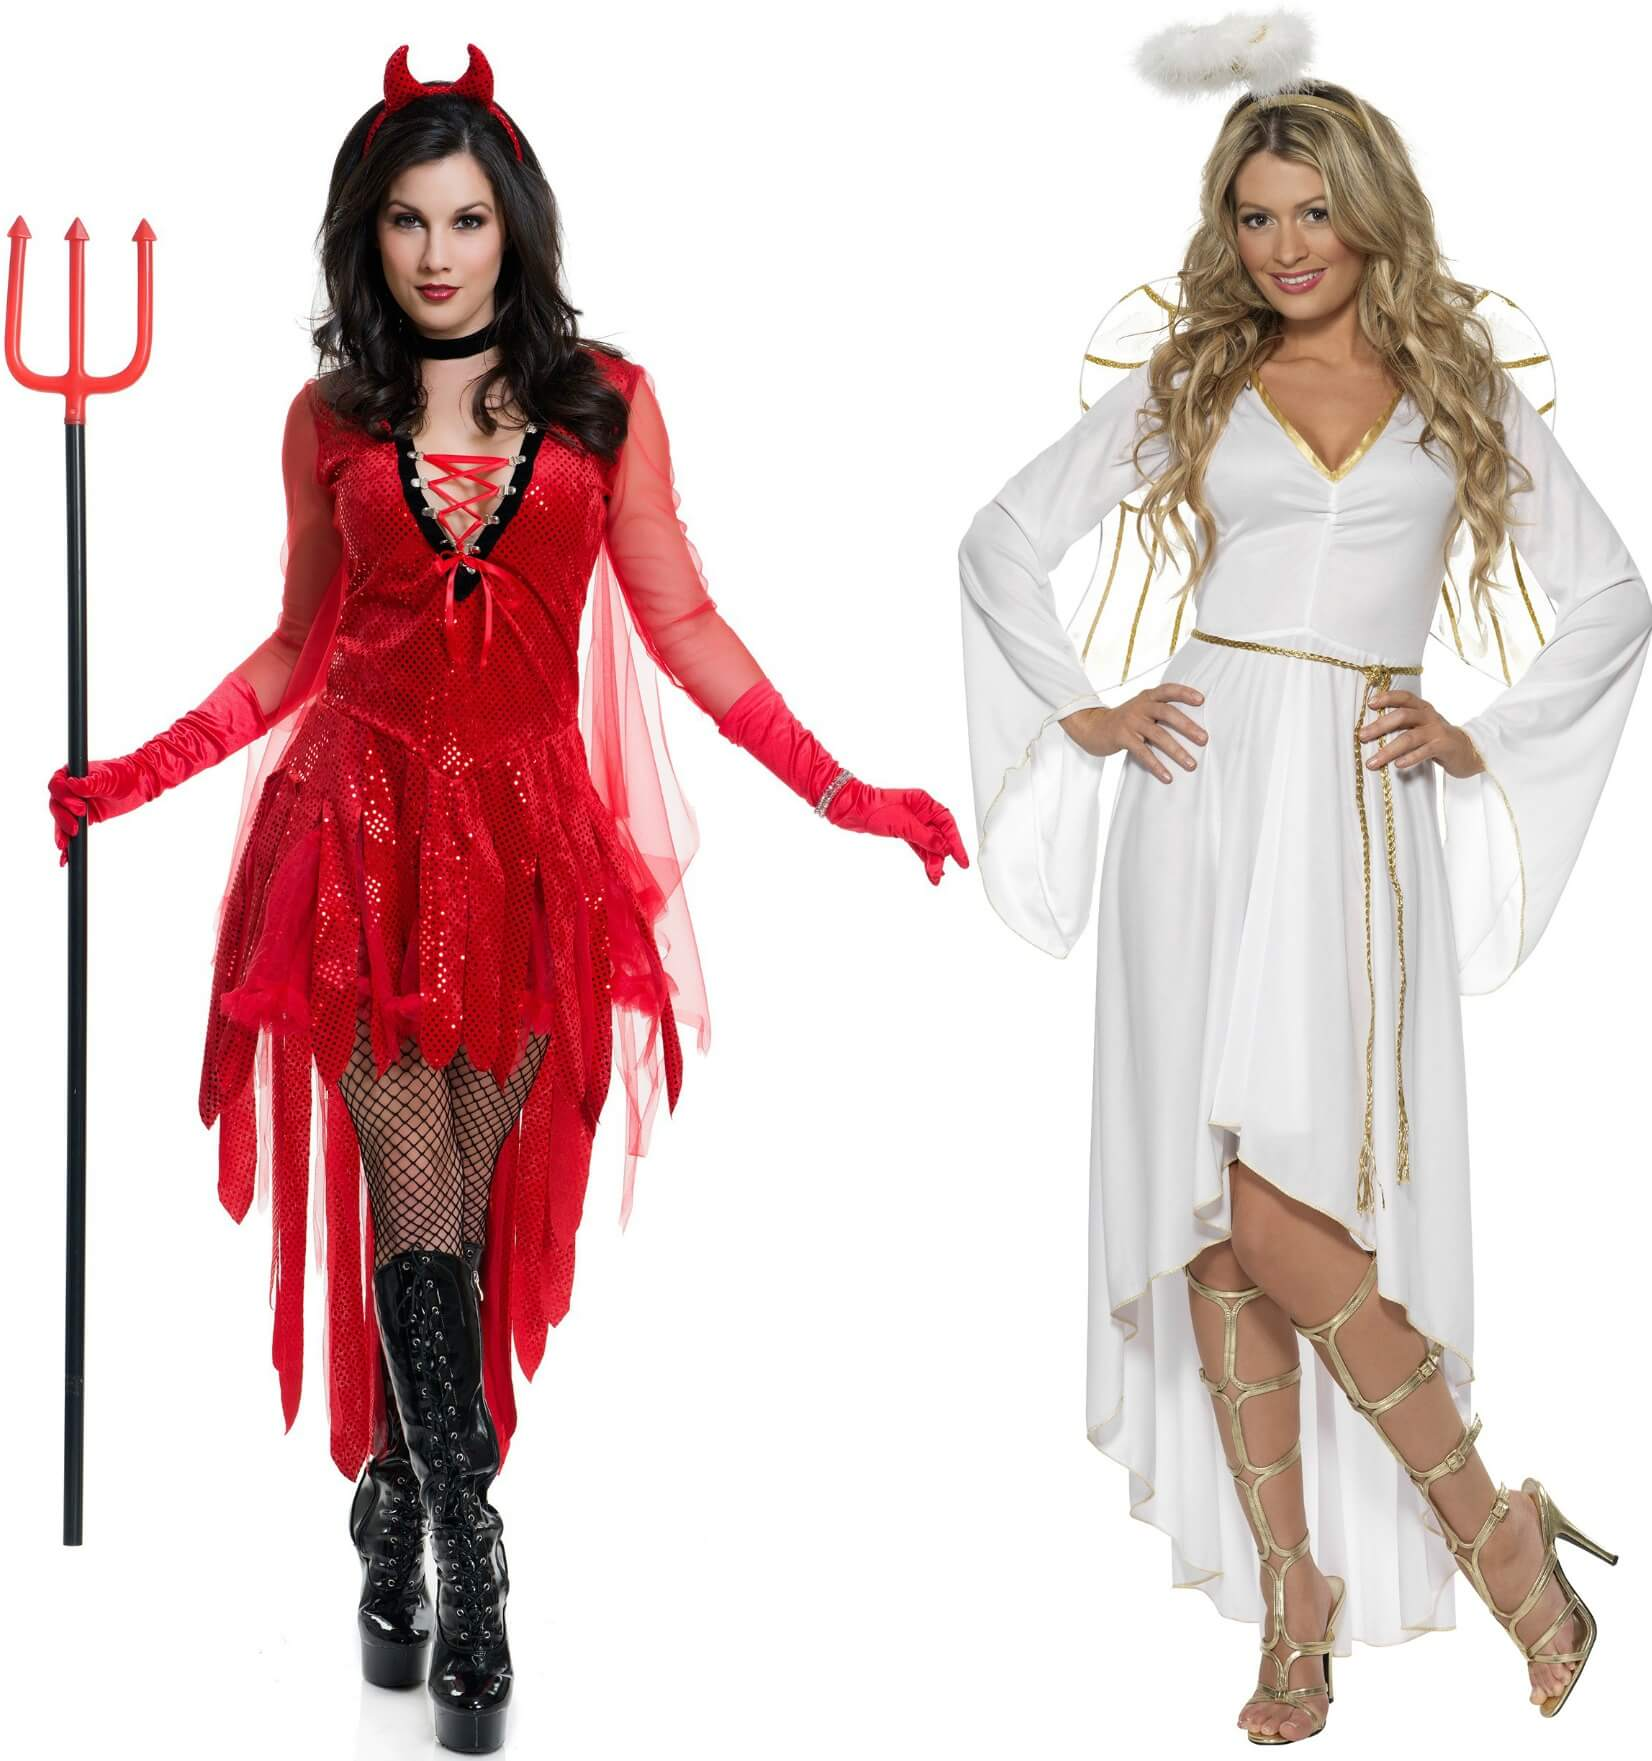 Angel and Devil Halloween Costumes  sc 1 st  Halloween Costumes & Costume Ideas for BFFs - Halloween Costumes Blog